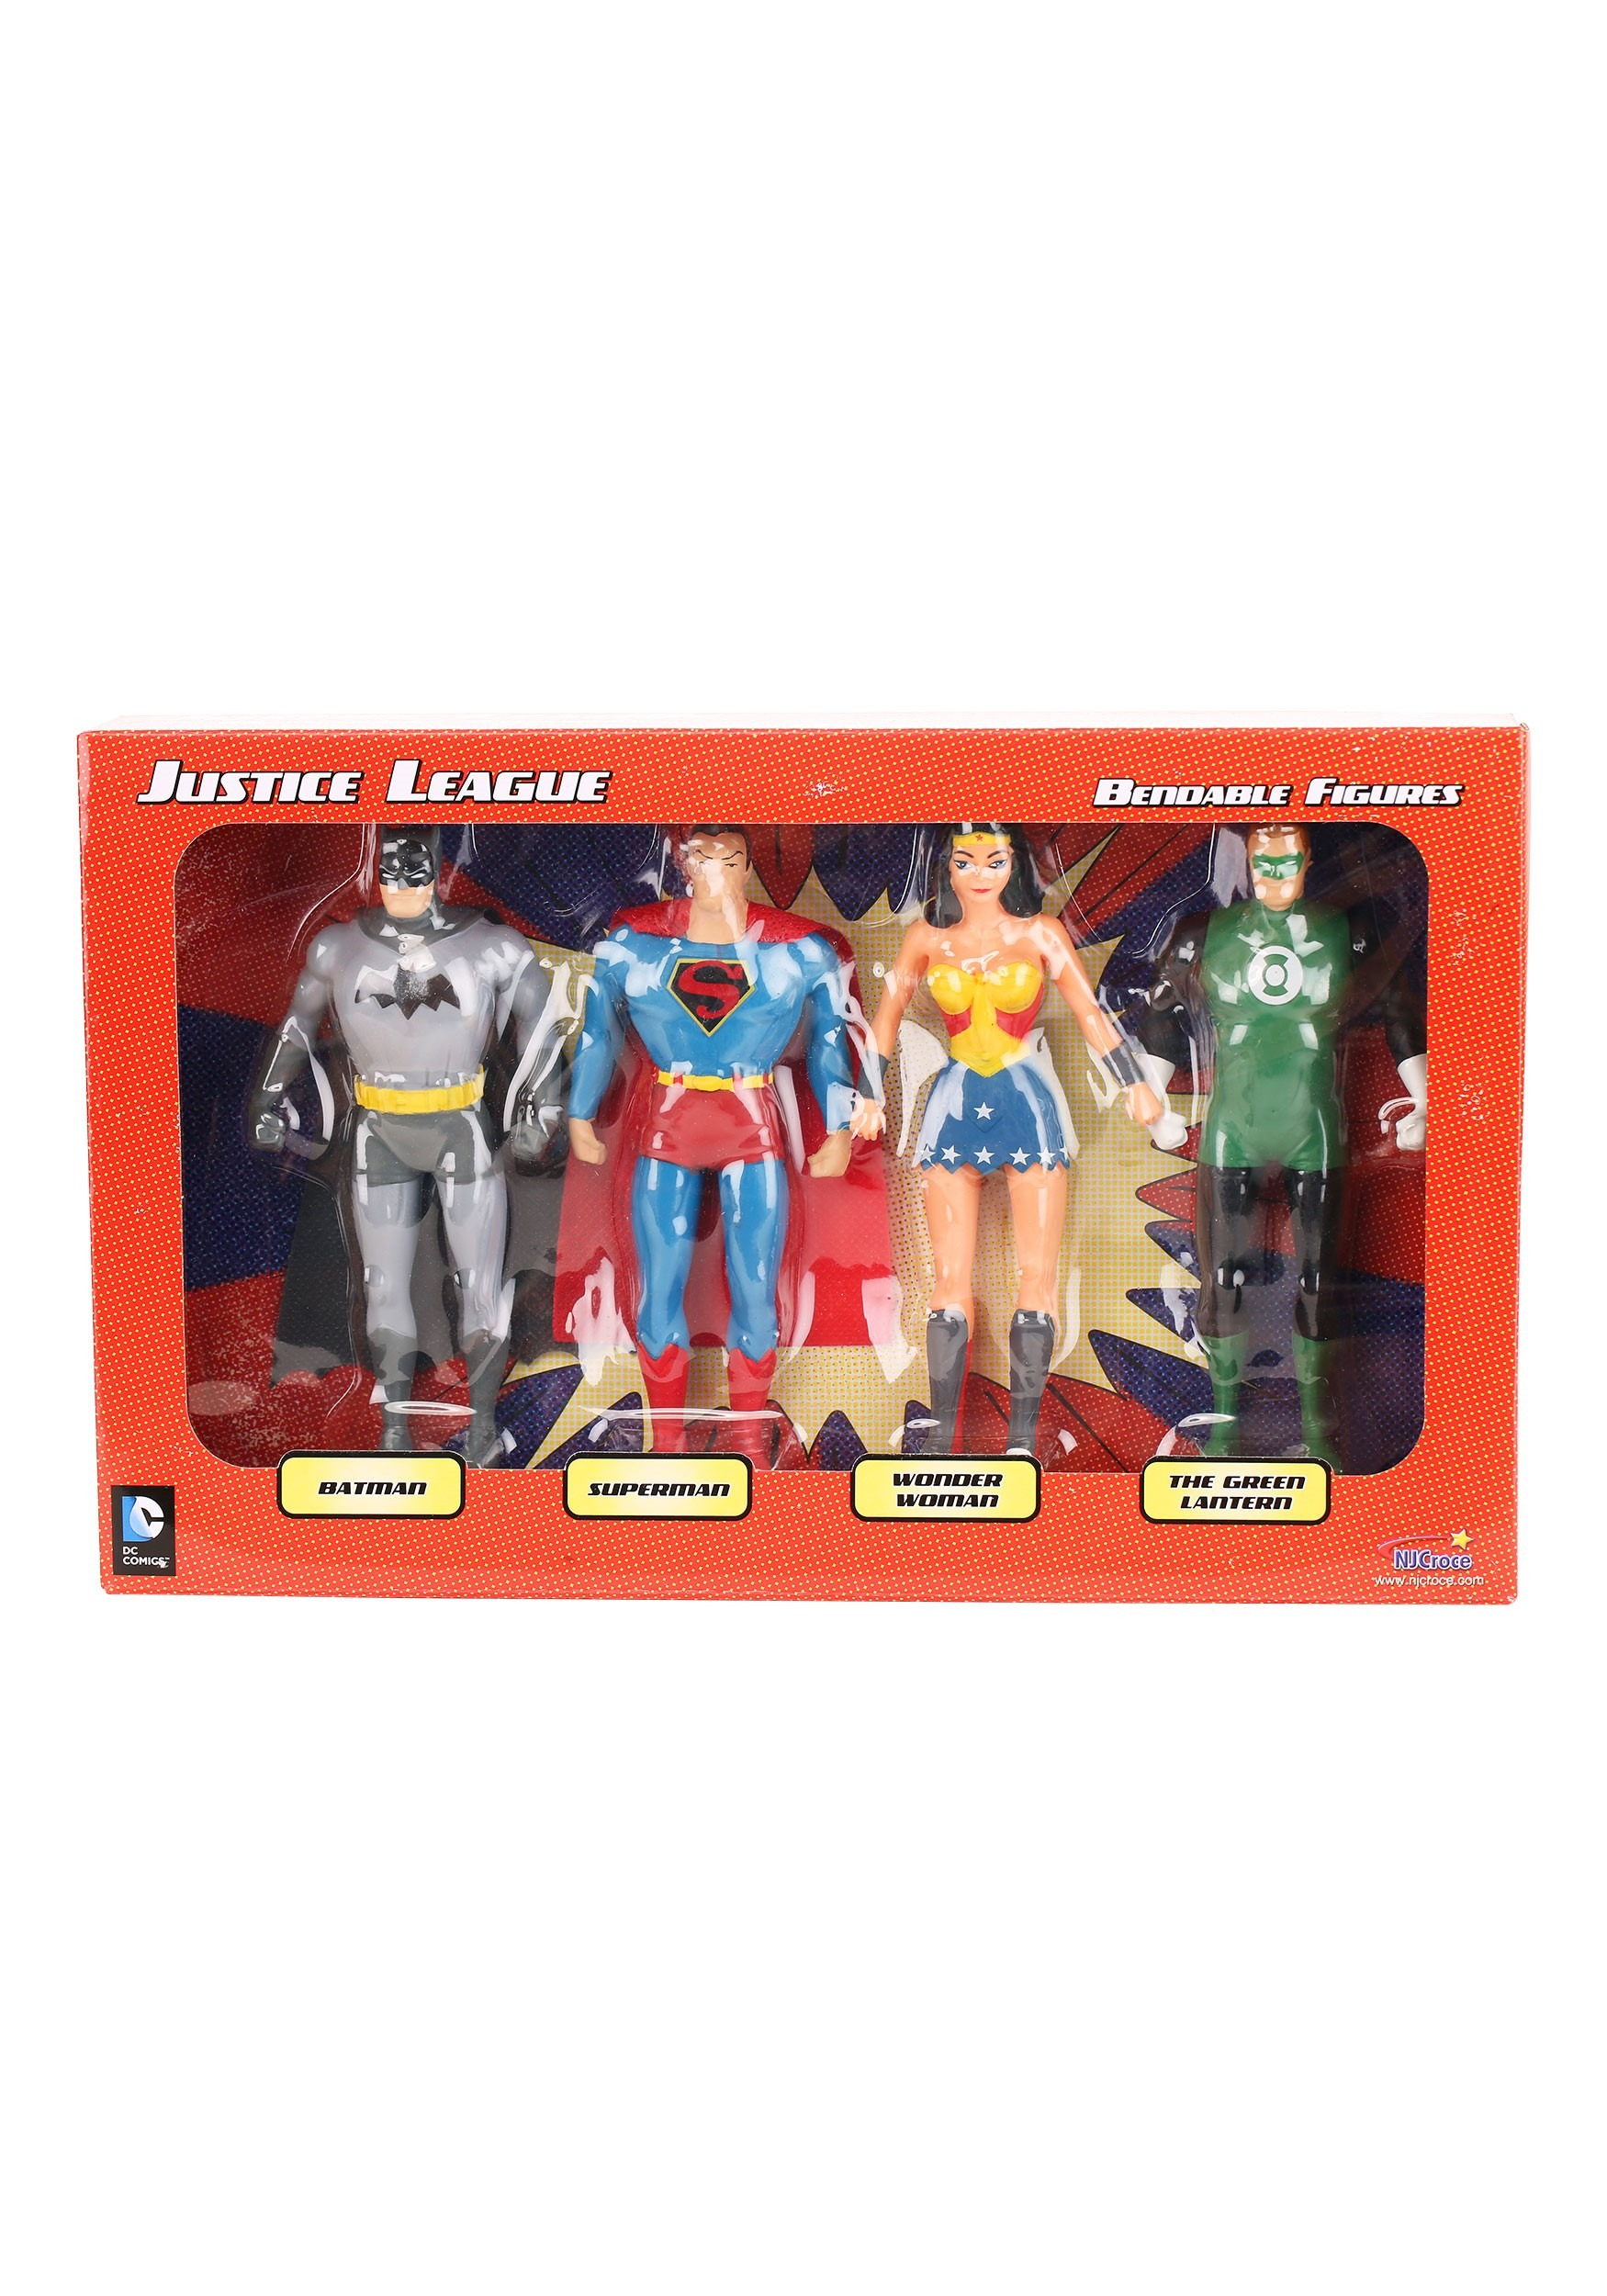 Justice League Bendable Figures Boxed Set NJCDC3900